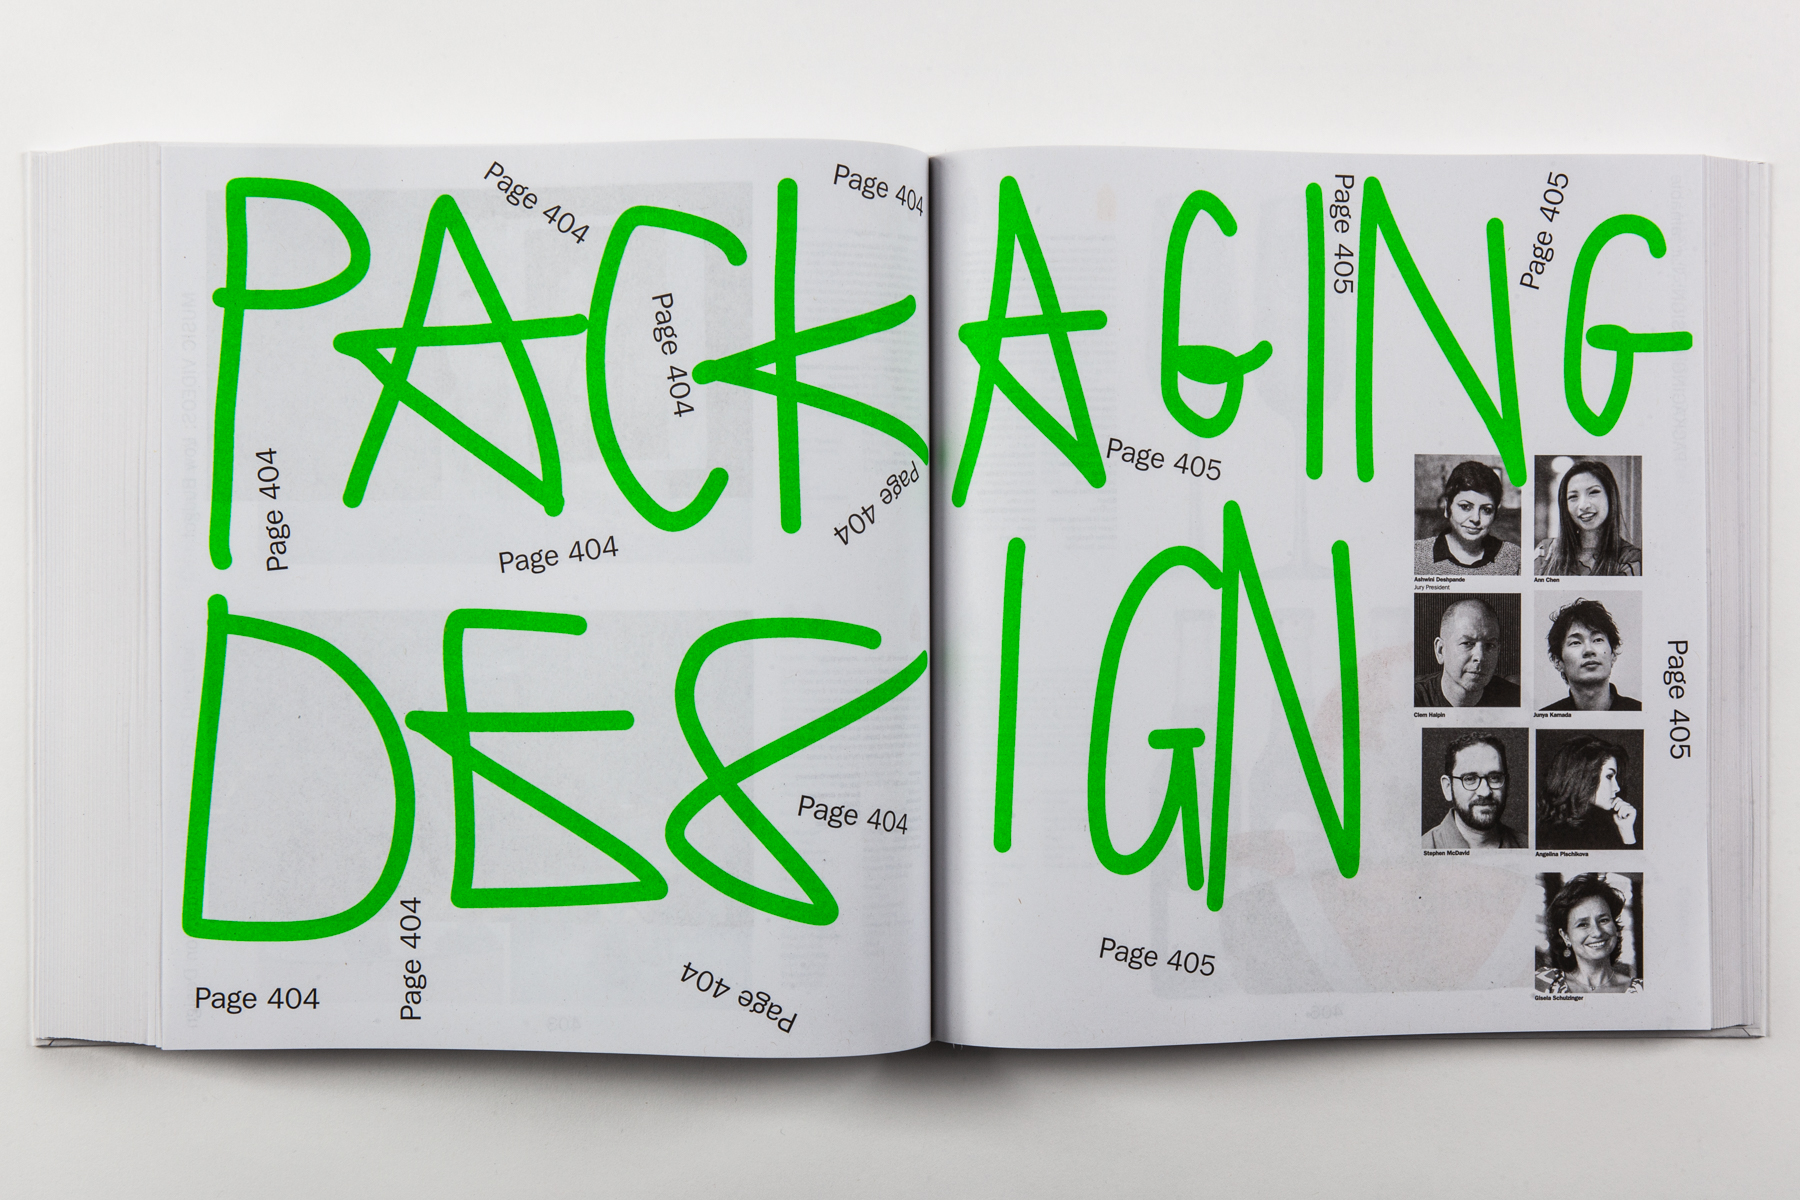 D&AD enlists Richard Turley to design the 2019 D&AD Annual – available now